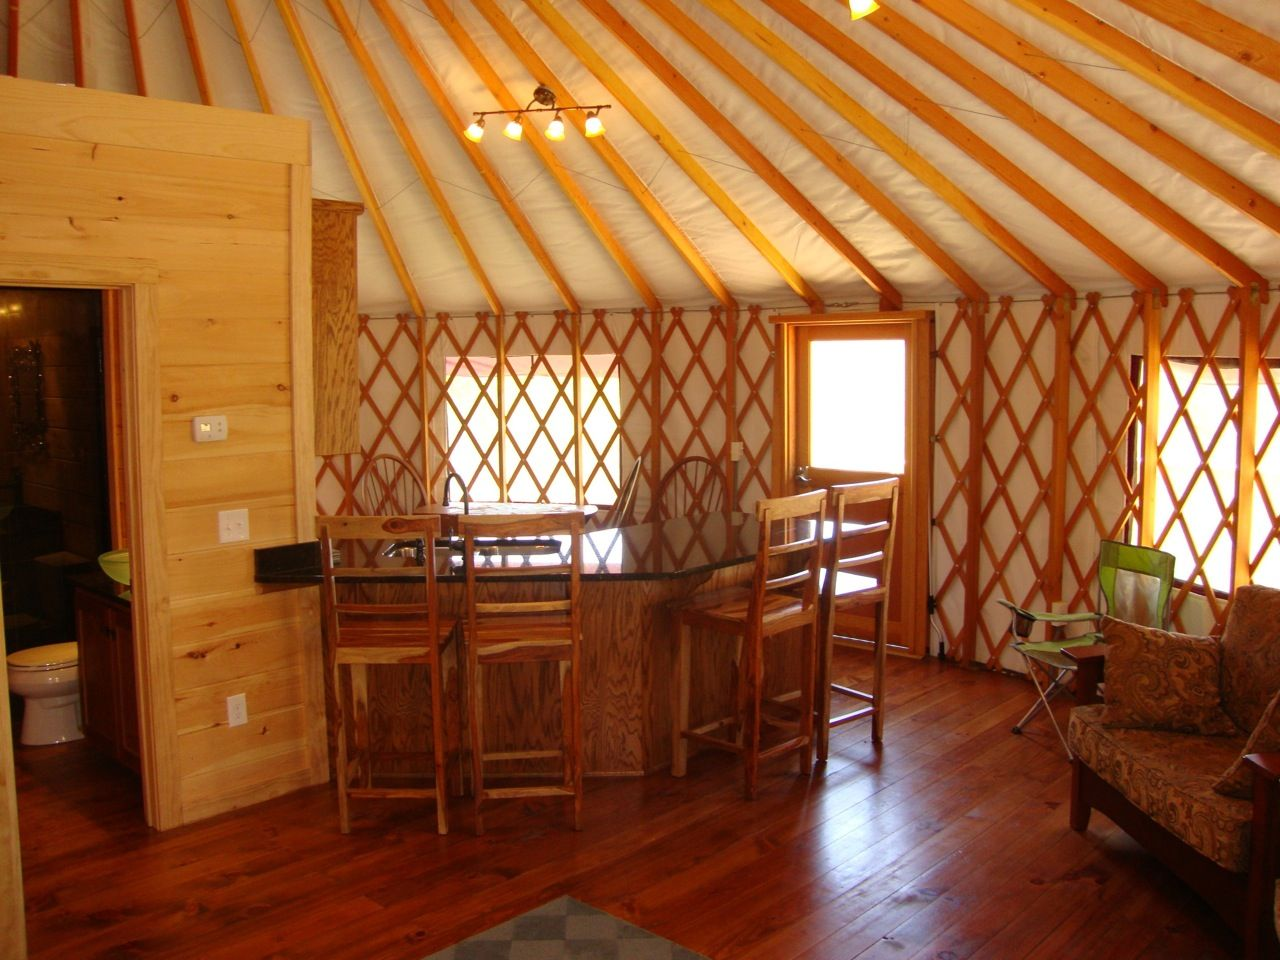 34 best yurts images on pinterest | yurts, country living and yurt